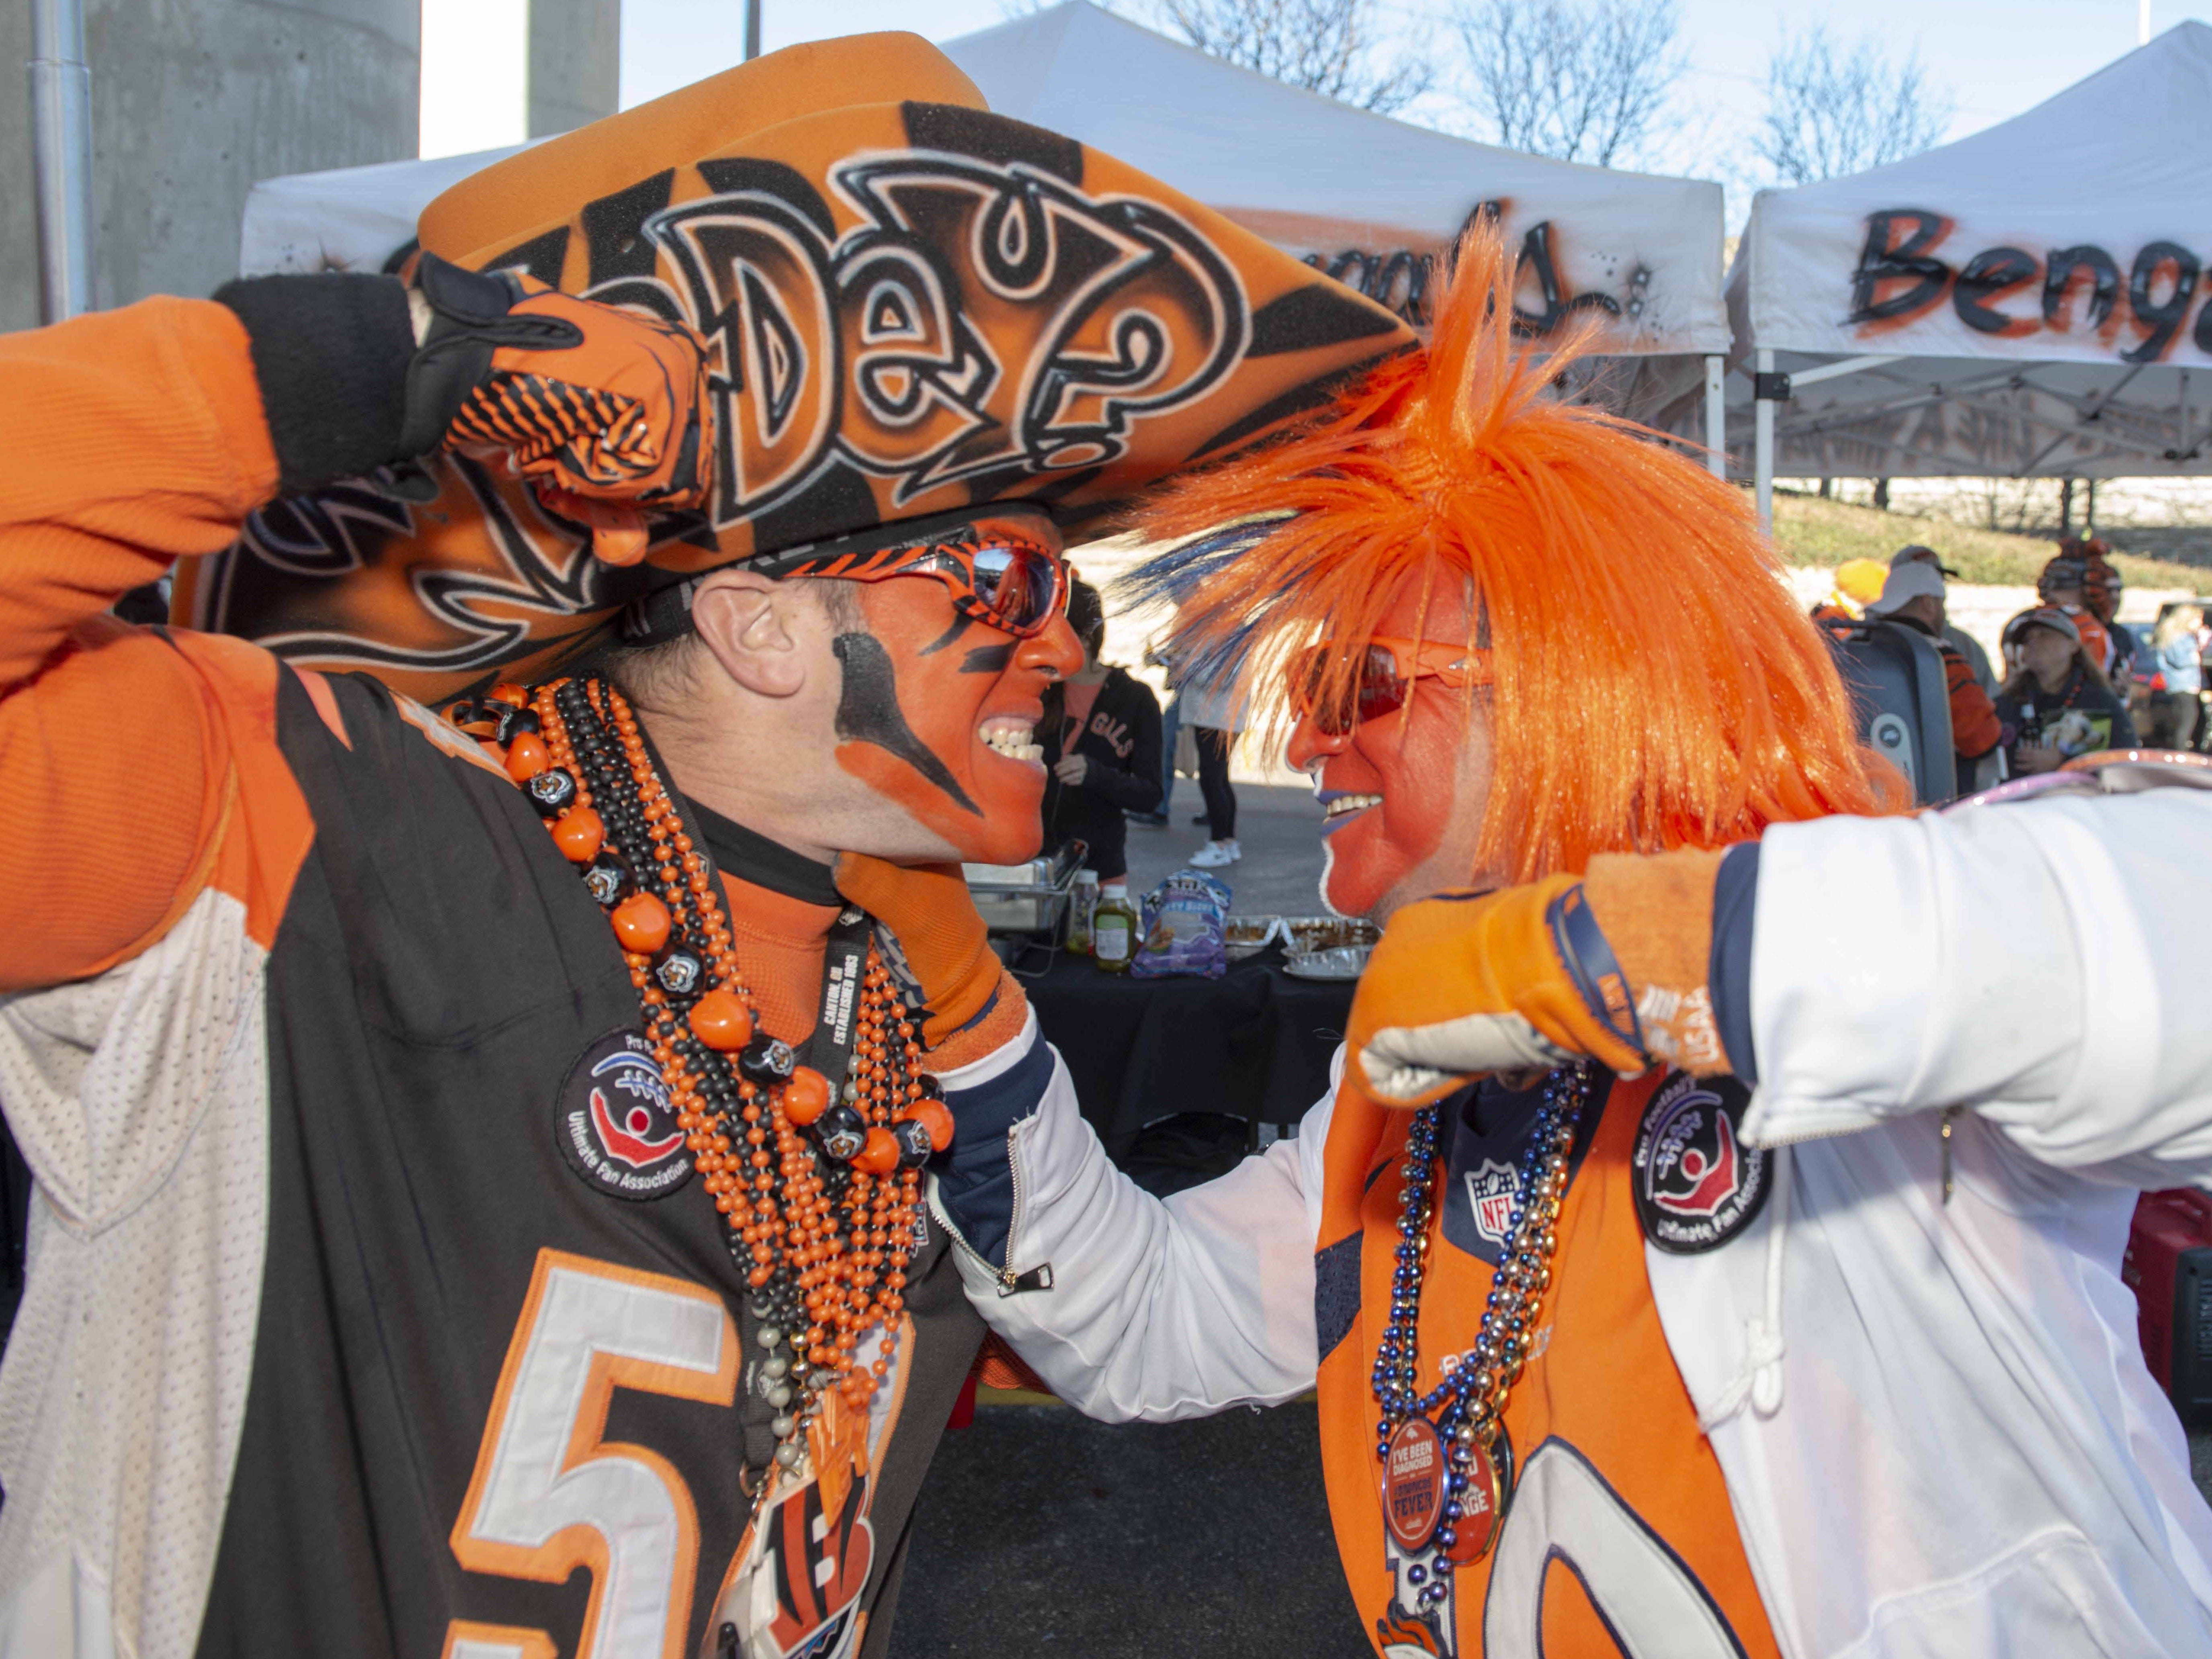 Cincinnati Bengals fans showed up for tailgating parties as the Cincinnati Bengals hosted the Denver Broncos at Paul Brown Stadium Sunday, December 2, 2018. Cincinnati Bengal fan Who Dey Baby and Bronco fan Ken Castanda argue over who is going to win.